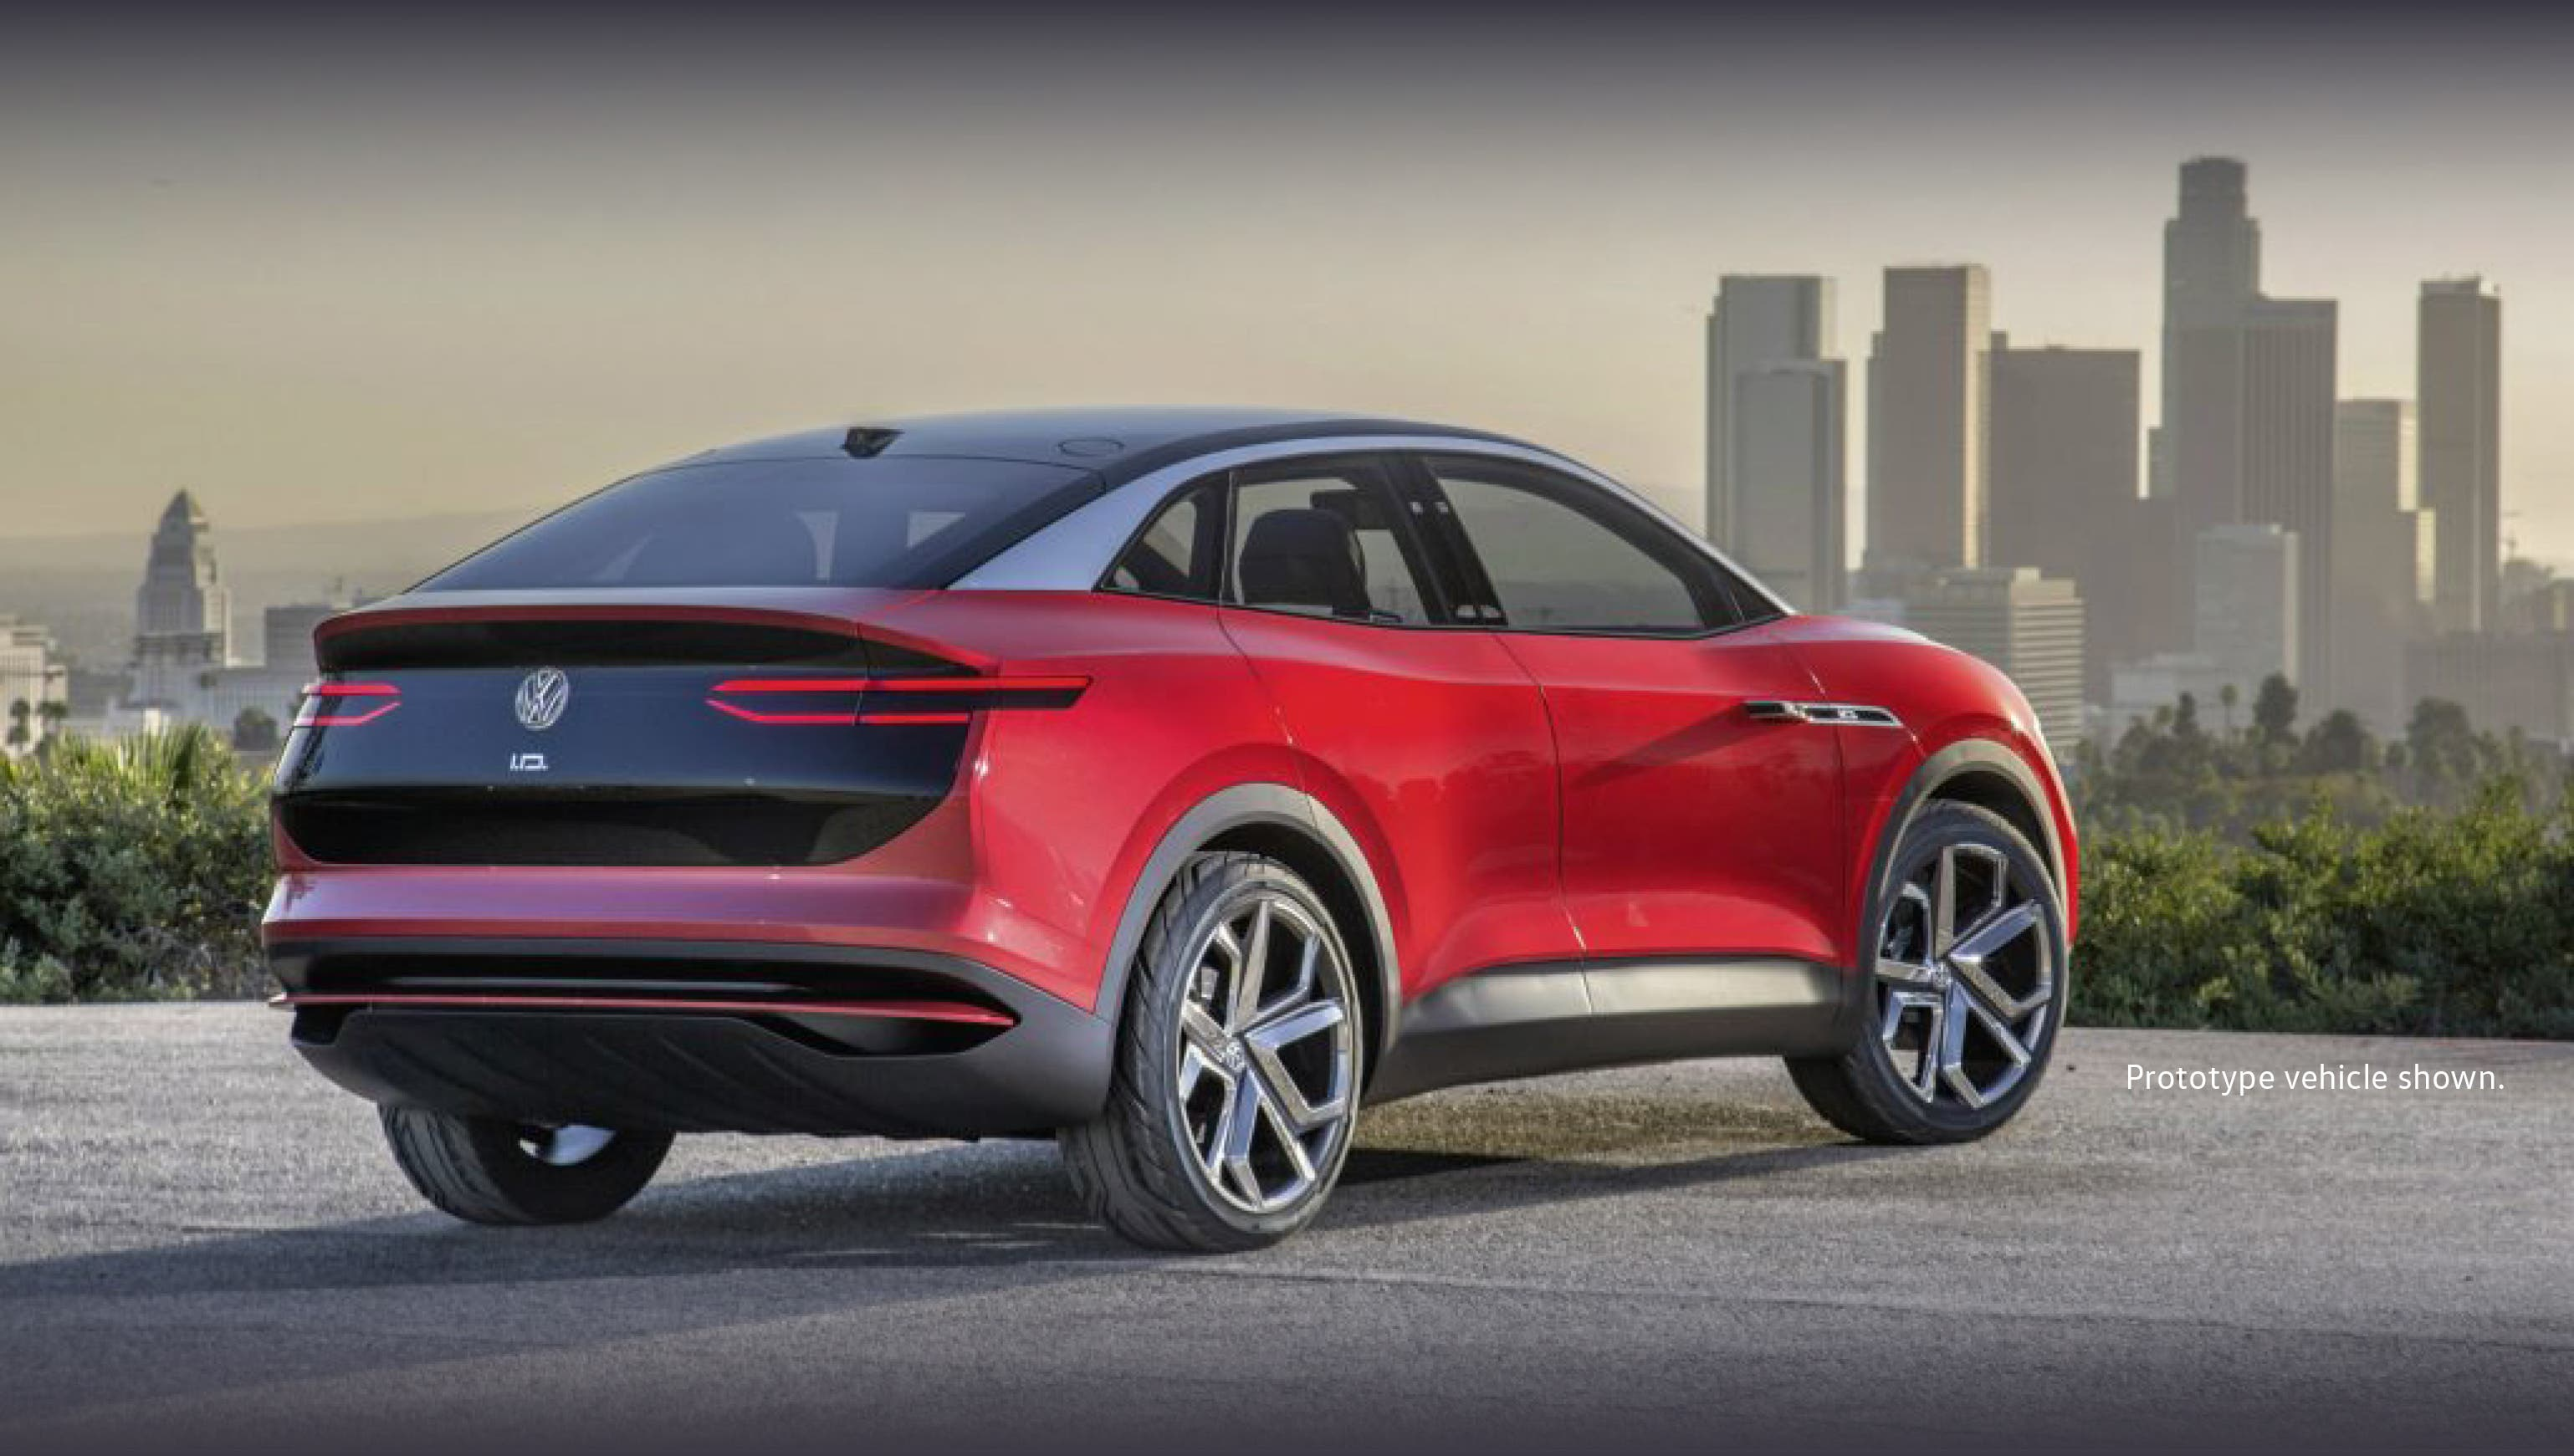 VW ID Crozz Electric Crossover SUV: Design, Release >> The Volkswagen Id Crozz Isn T Here Yet But The Marketing Campaign